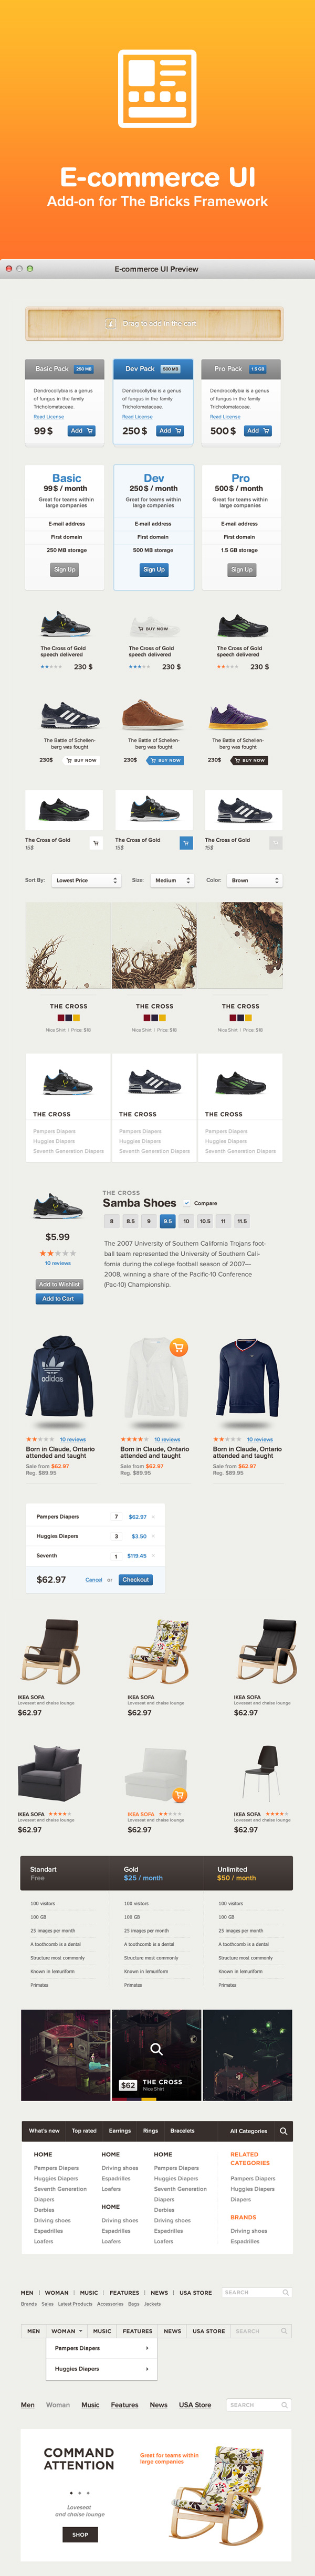 E-commerce UI – User Interface Kit